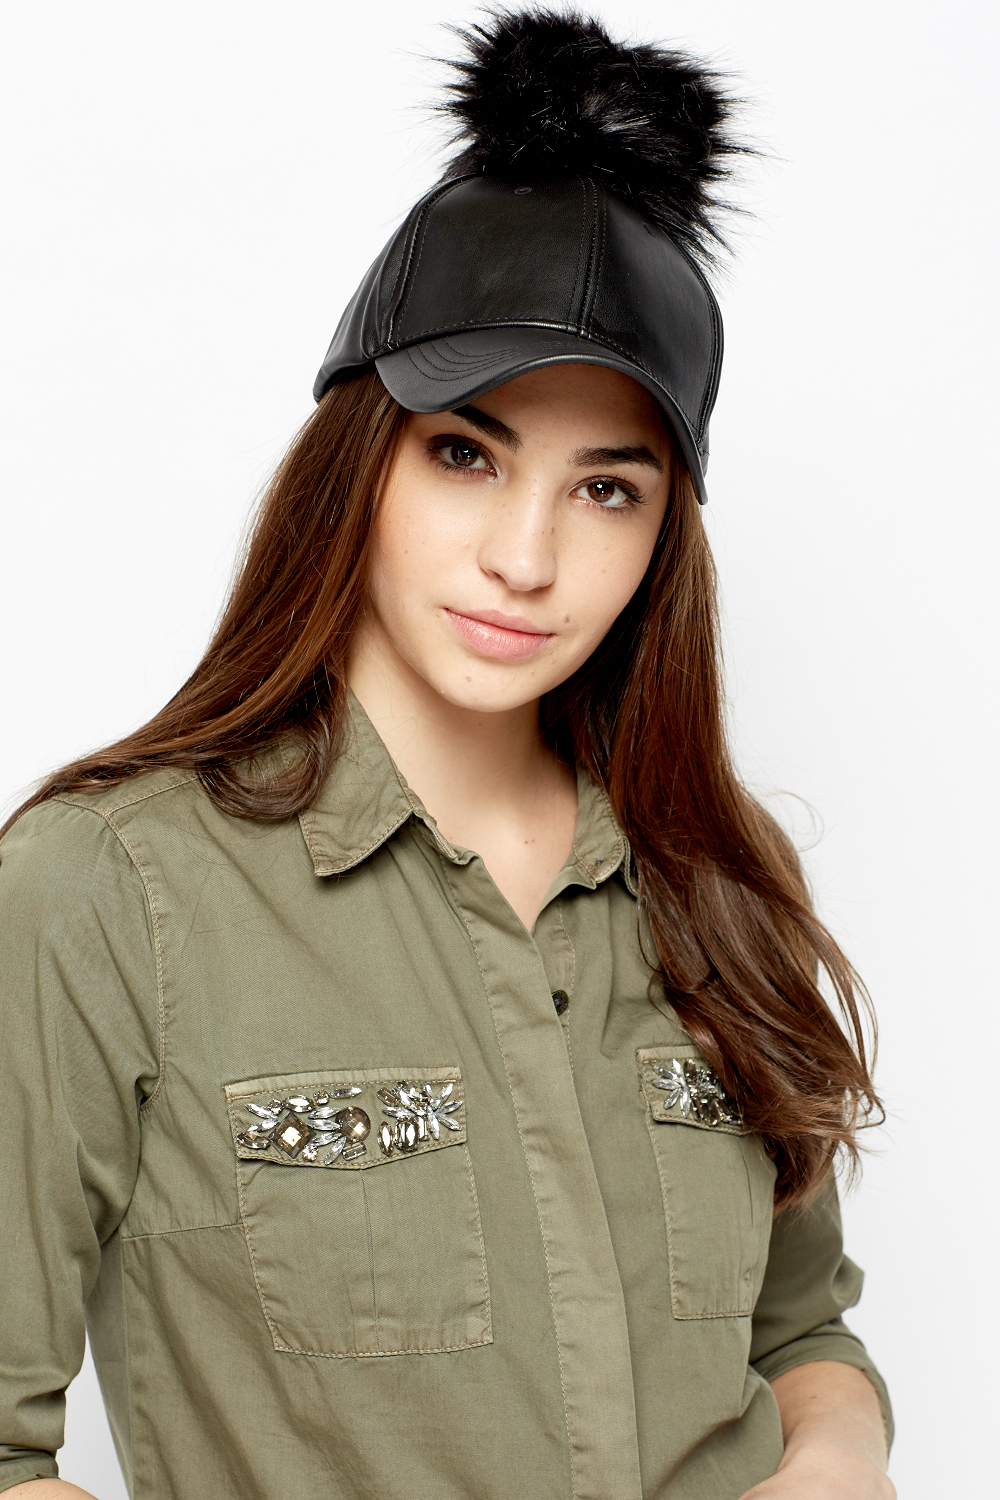 d73696e7a76 Faux Leather Pom Pom Cap - Just £5